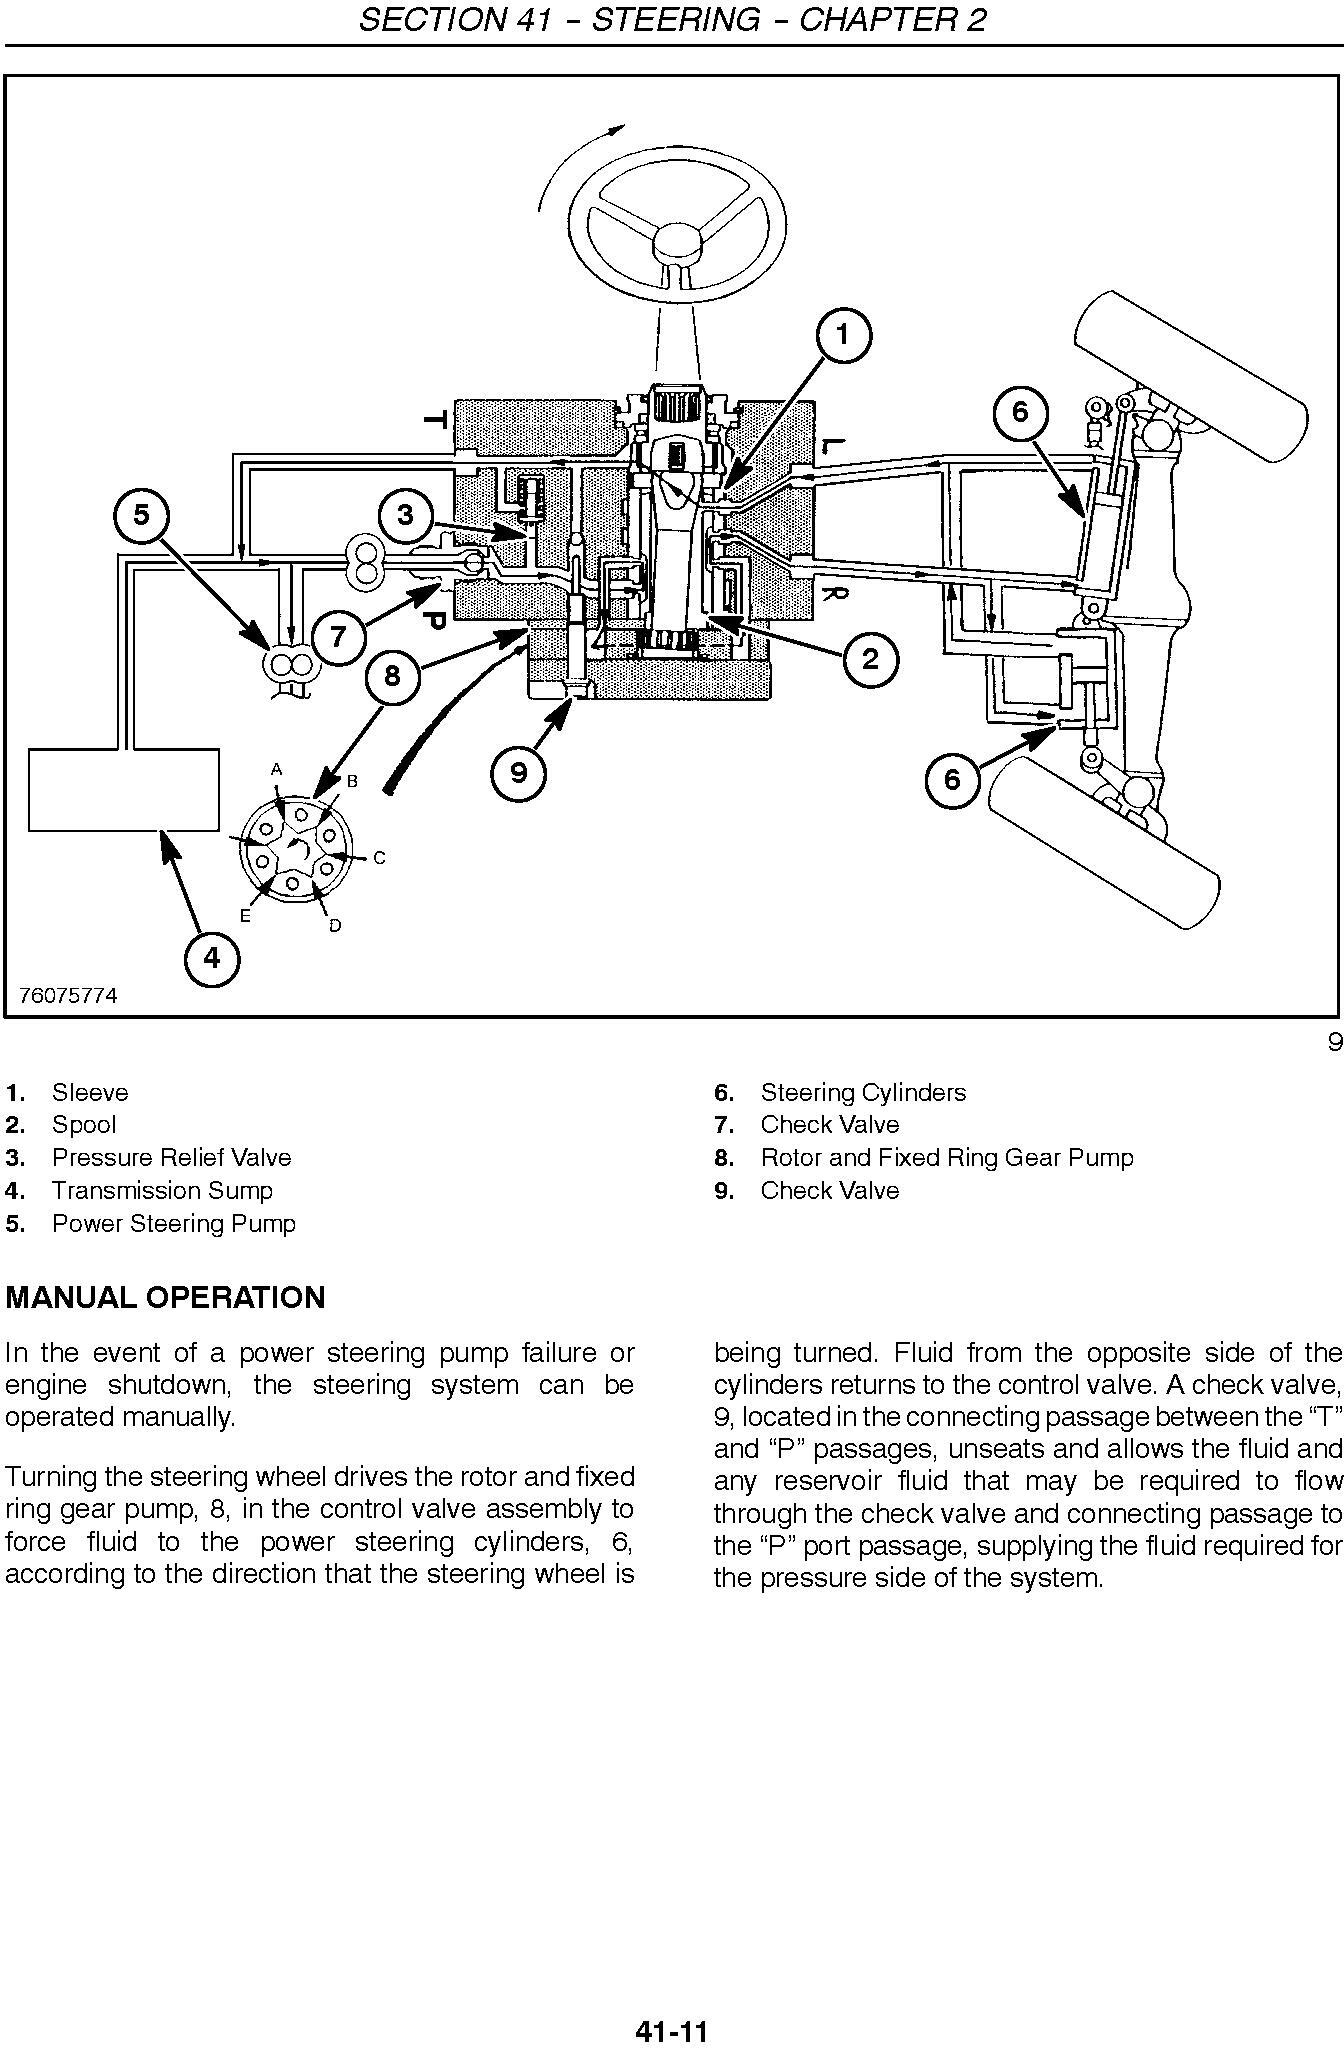 New Holland Boomer 3040, 3045, 3050 CVT Tractors Agricultural Service Manual - 2